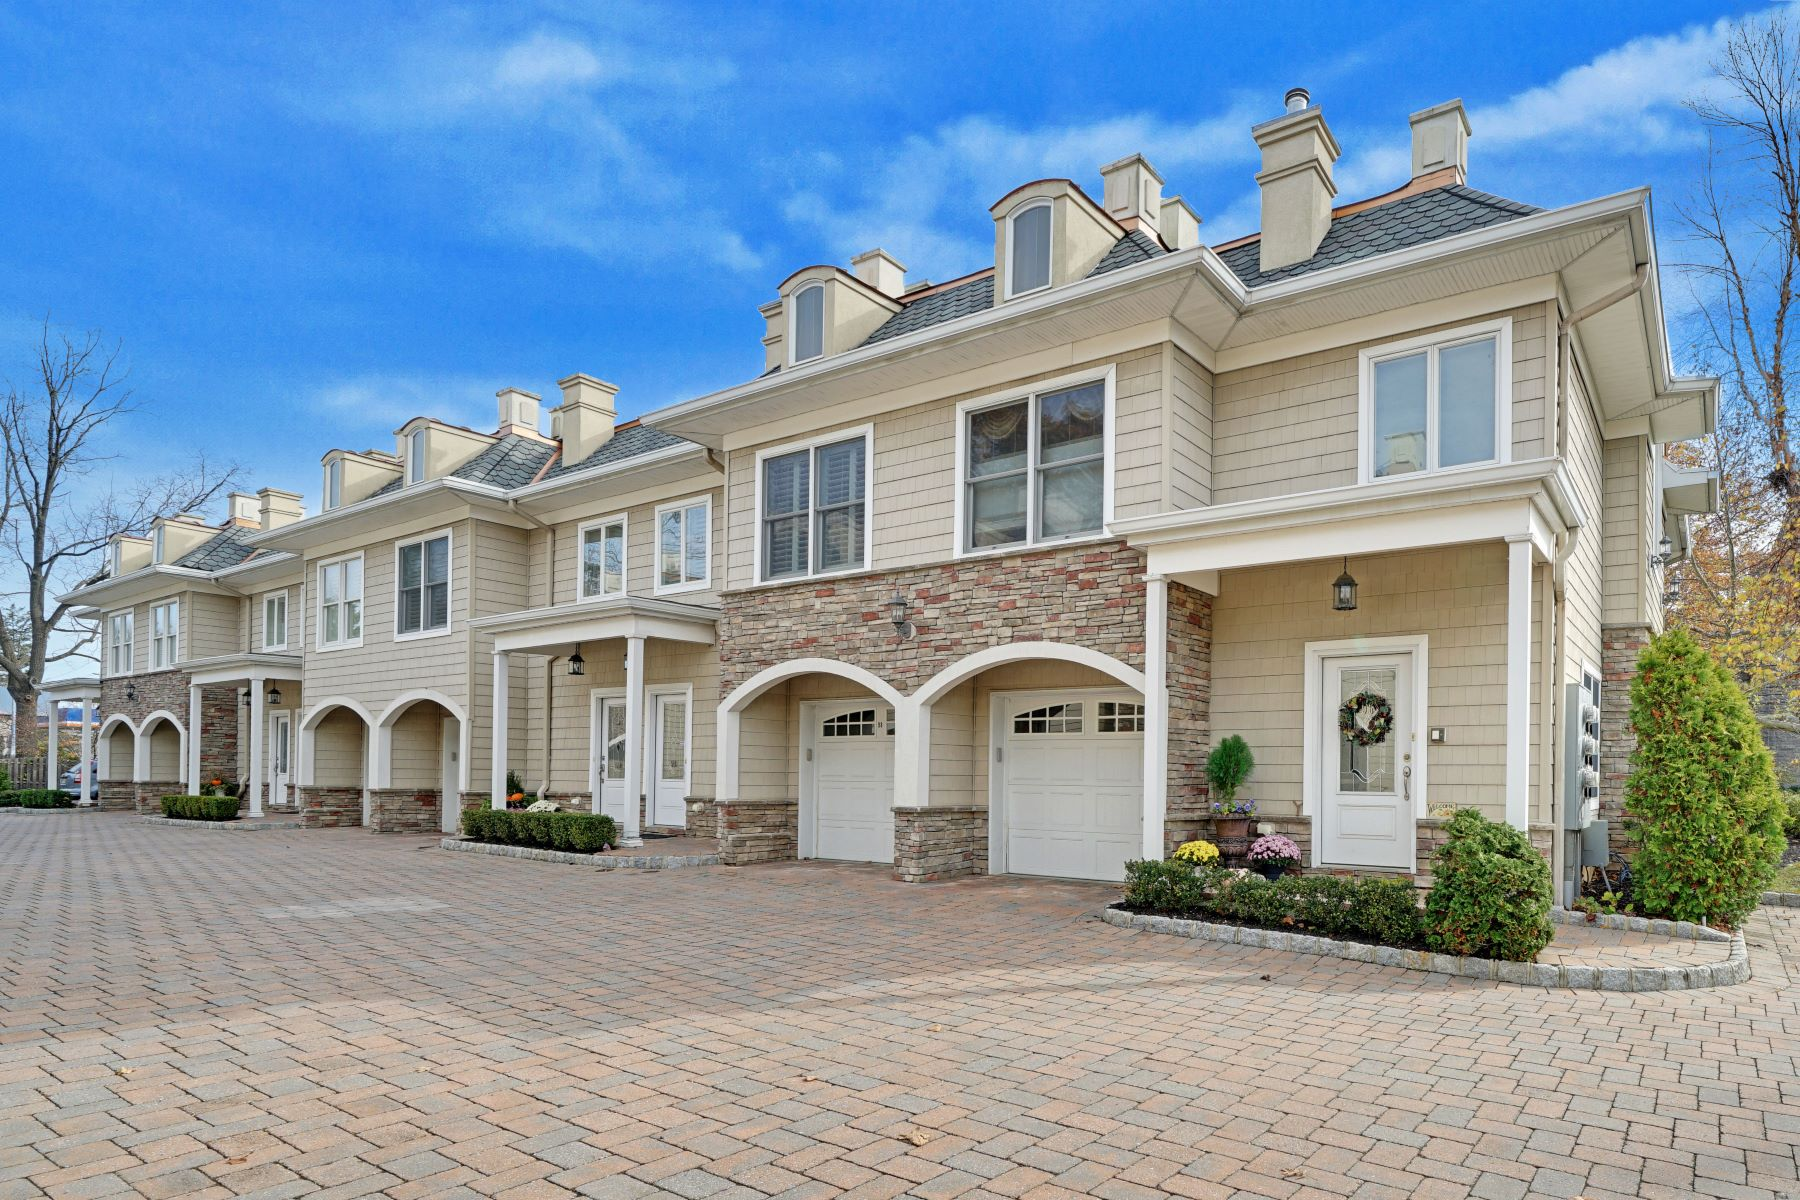 Maison accolée pour l Vente à Beautifully Upgraded End Unit Townhouse in Virginia Crossing 96 Virginia Ave, Manasquan, New Jersey 08736 États-Unis